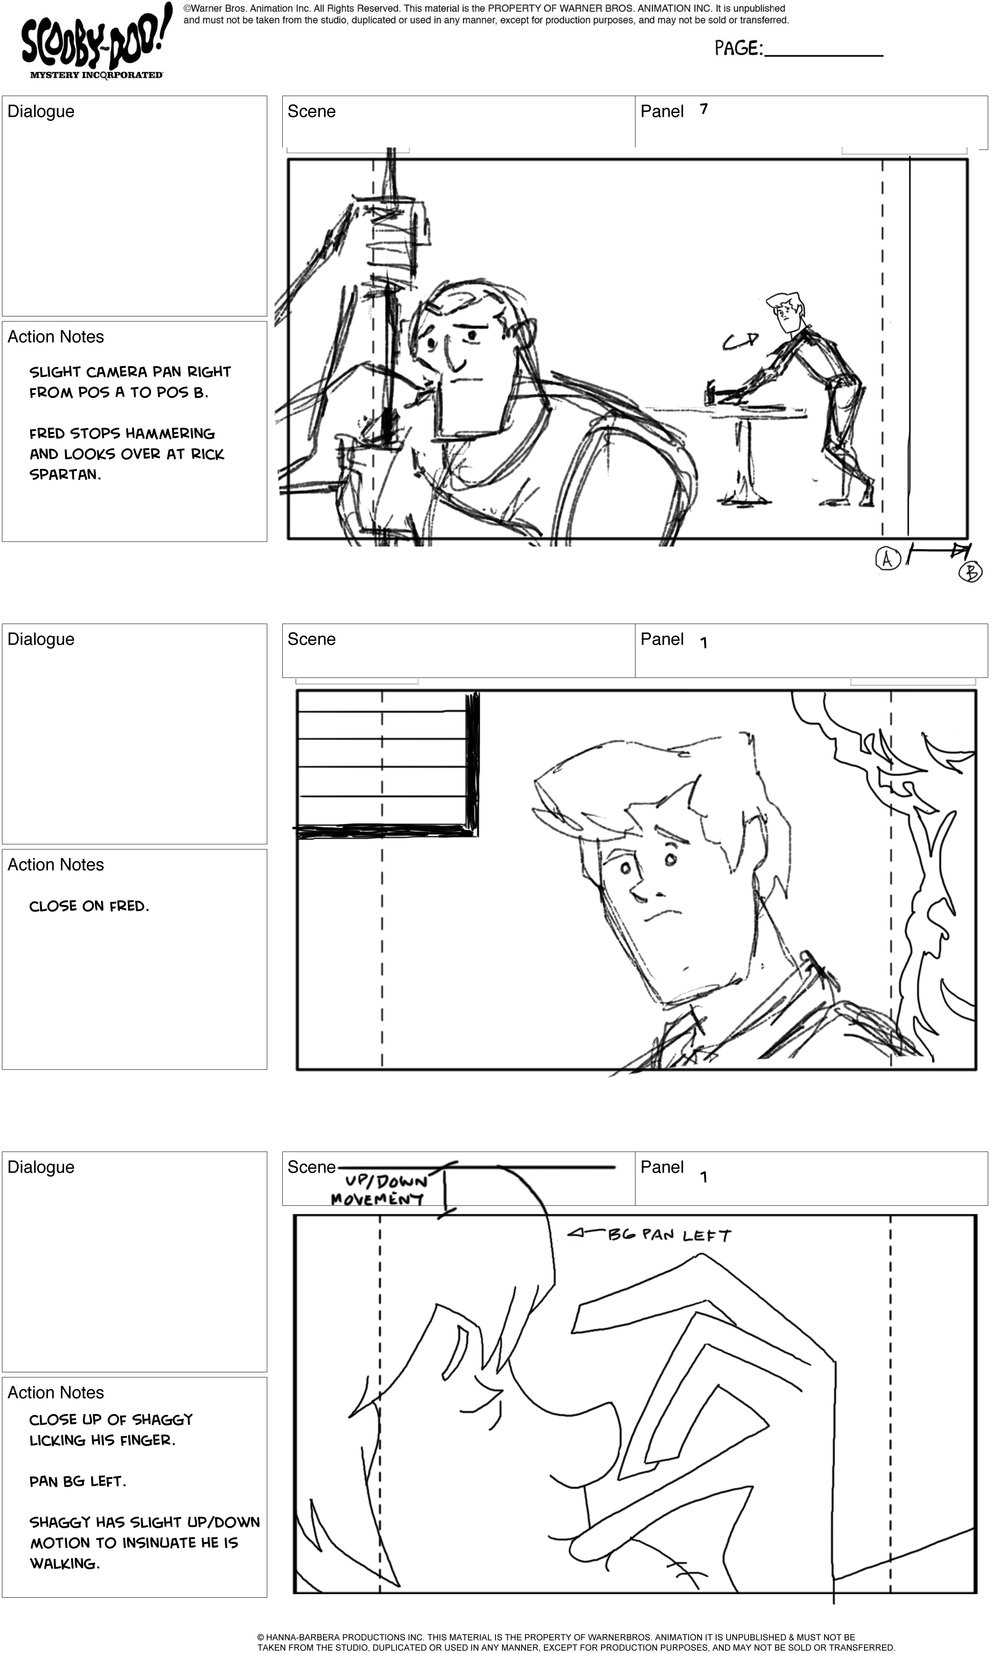 Scooby Storyboard page 29.jpg